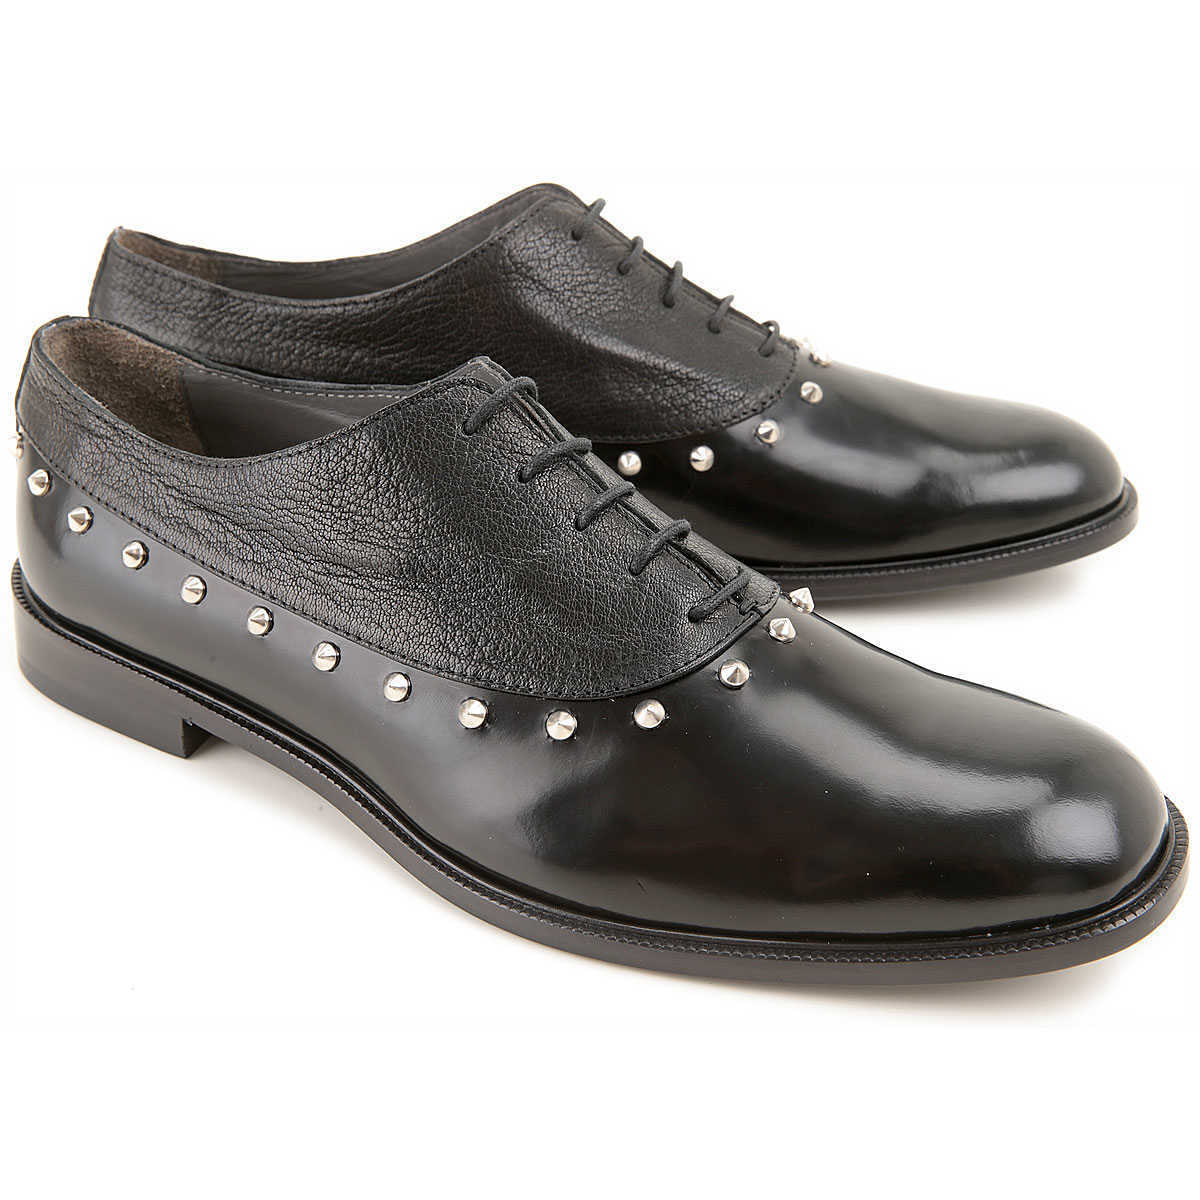 Giacomorelli Lace Up Shoes for Men Oxfords 10 6 Derbies and Brogues On Sale UK - GOOFASH